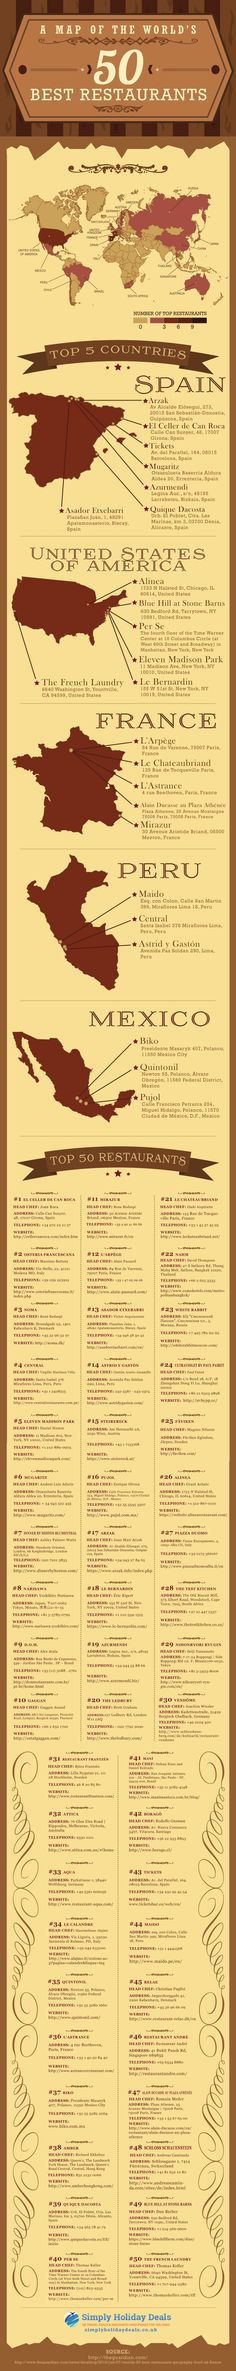 GOURMET TRAVEL | Map of the 50 Best Restaurants in the World